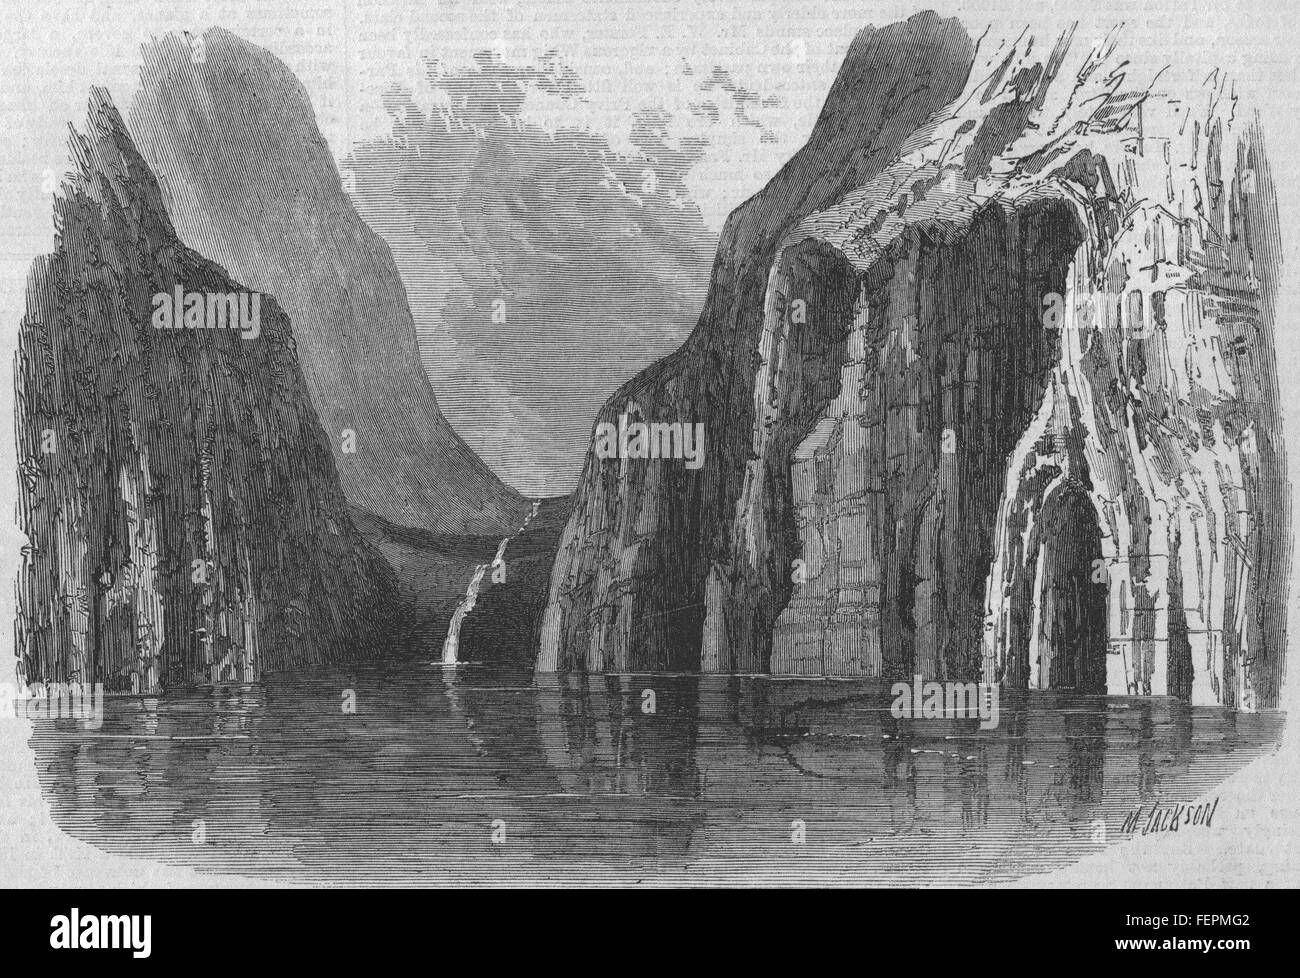 NEW ZEALAND Valley North of Milford Sound 1869. Illustrated London News - Stock Image